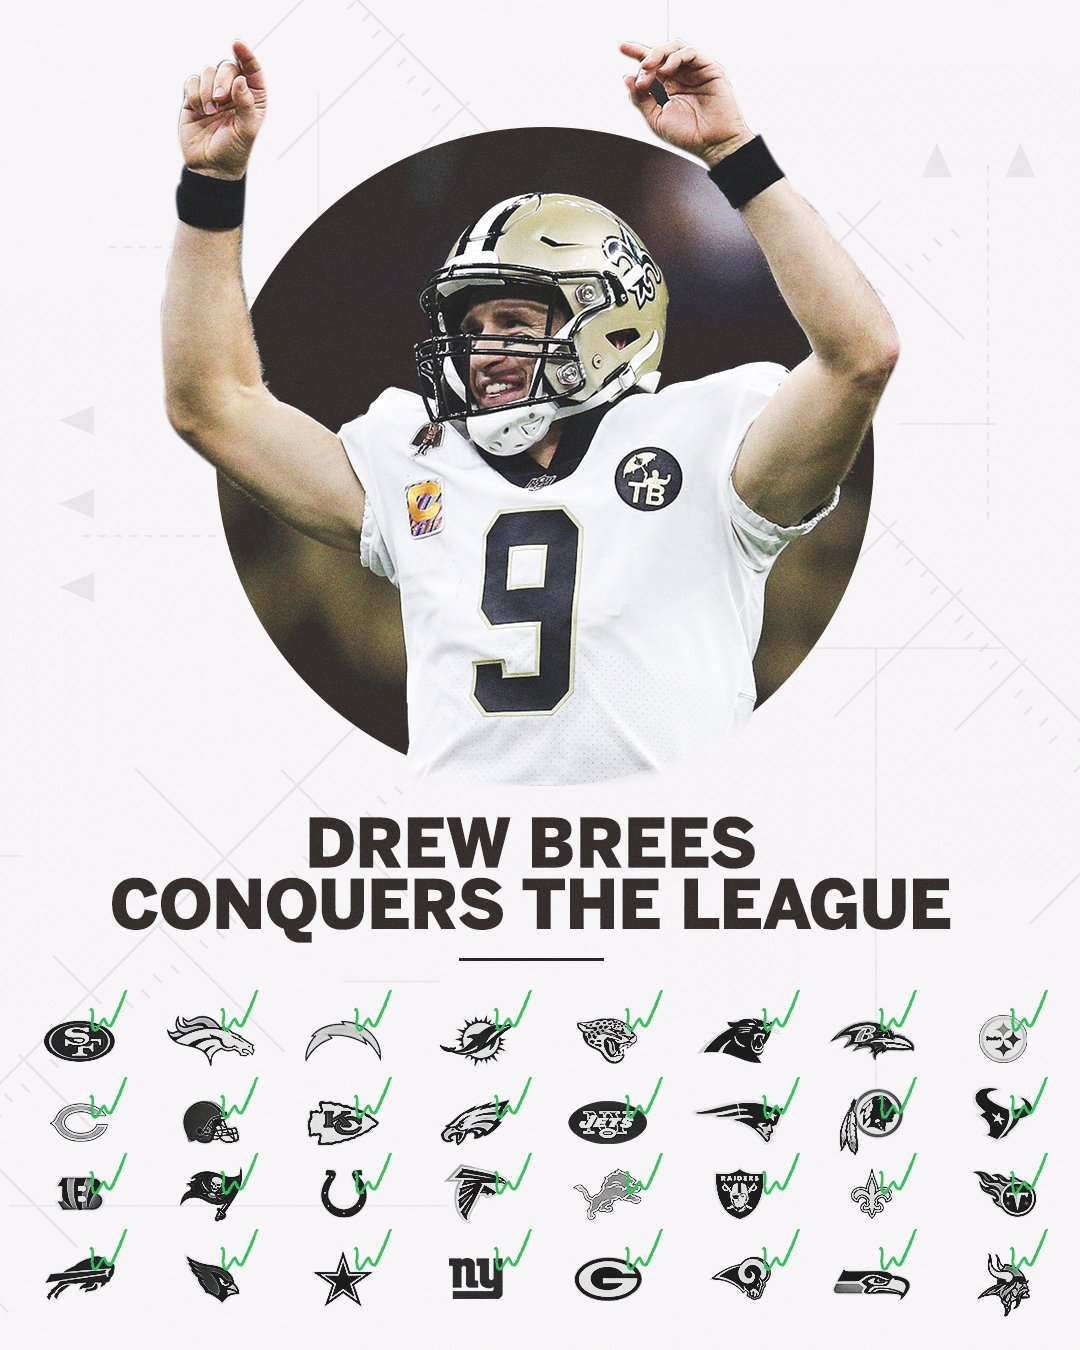 If you're reading this, Drew Brees has beaten your NFL team.  All 32 ✅ https://t.co/nSpXBsG5Kl